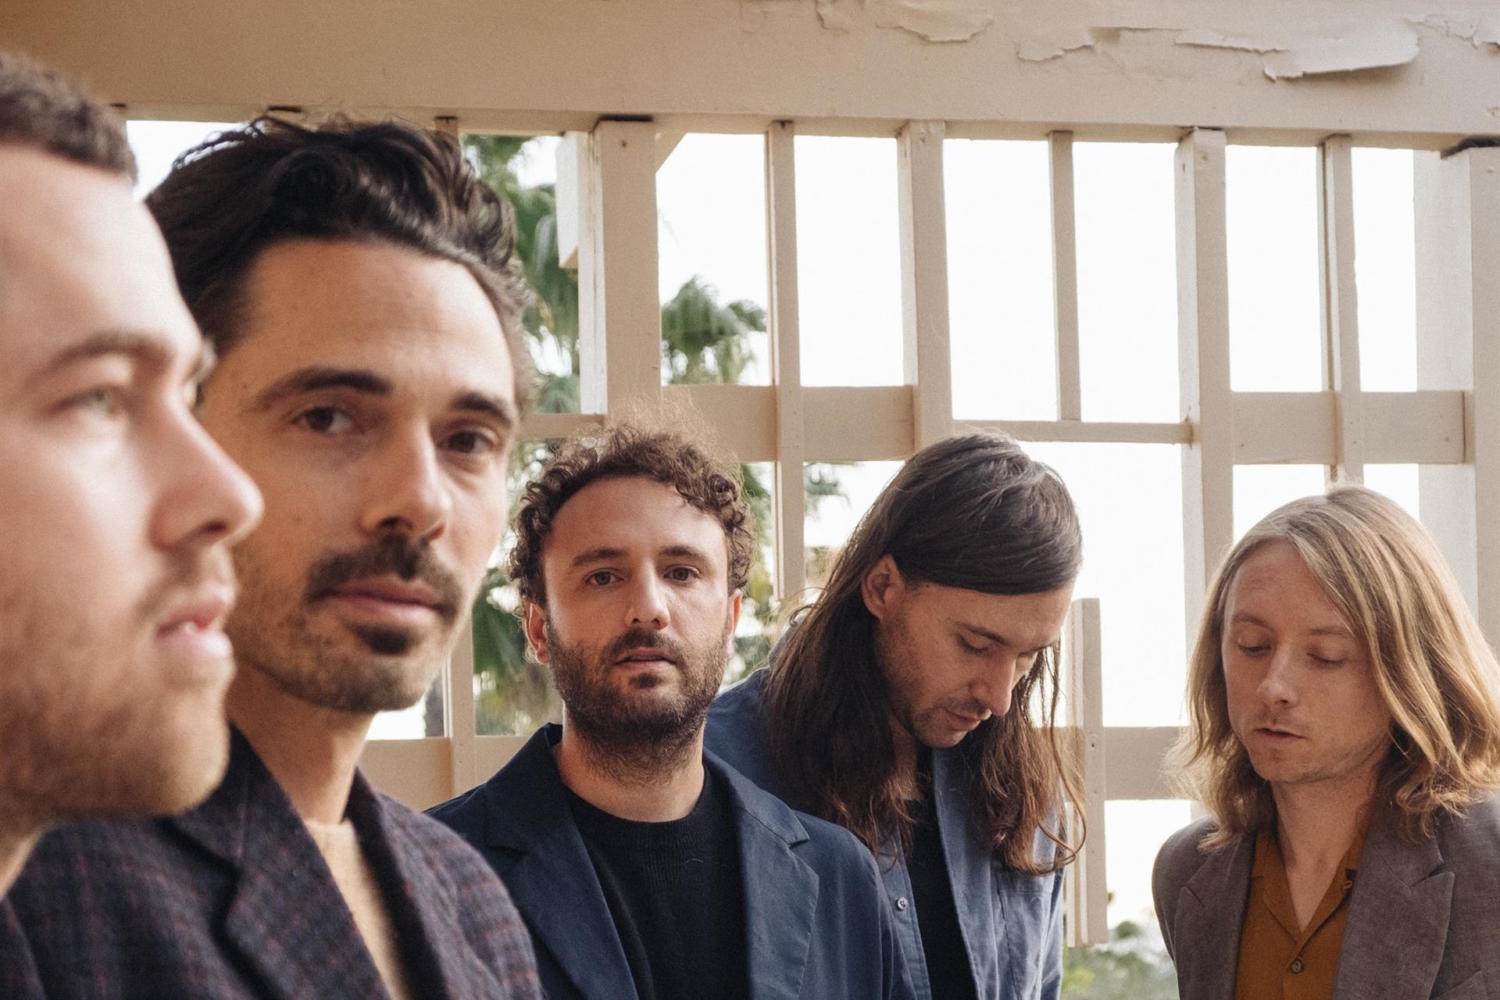 Local Natives offer up new track 'Tap Dancer'